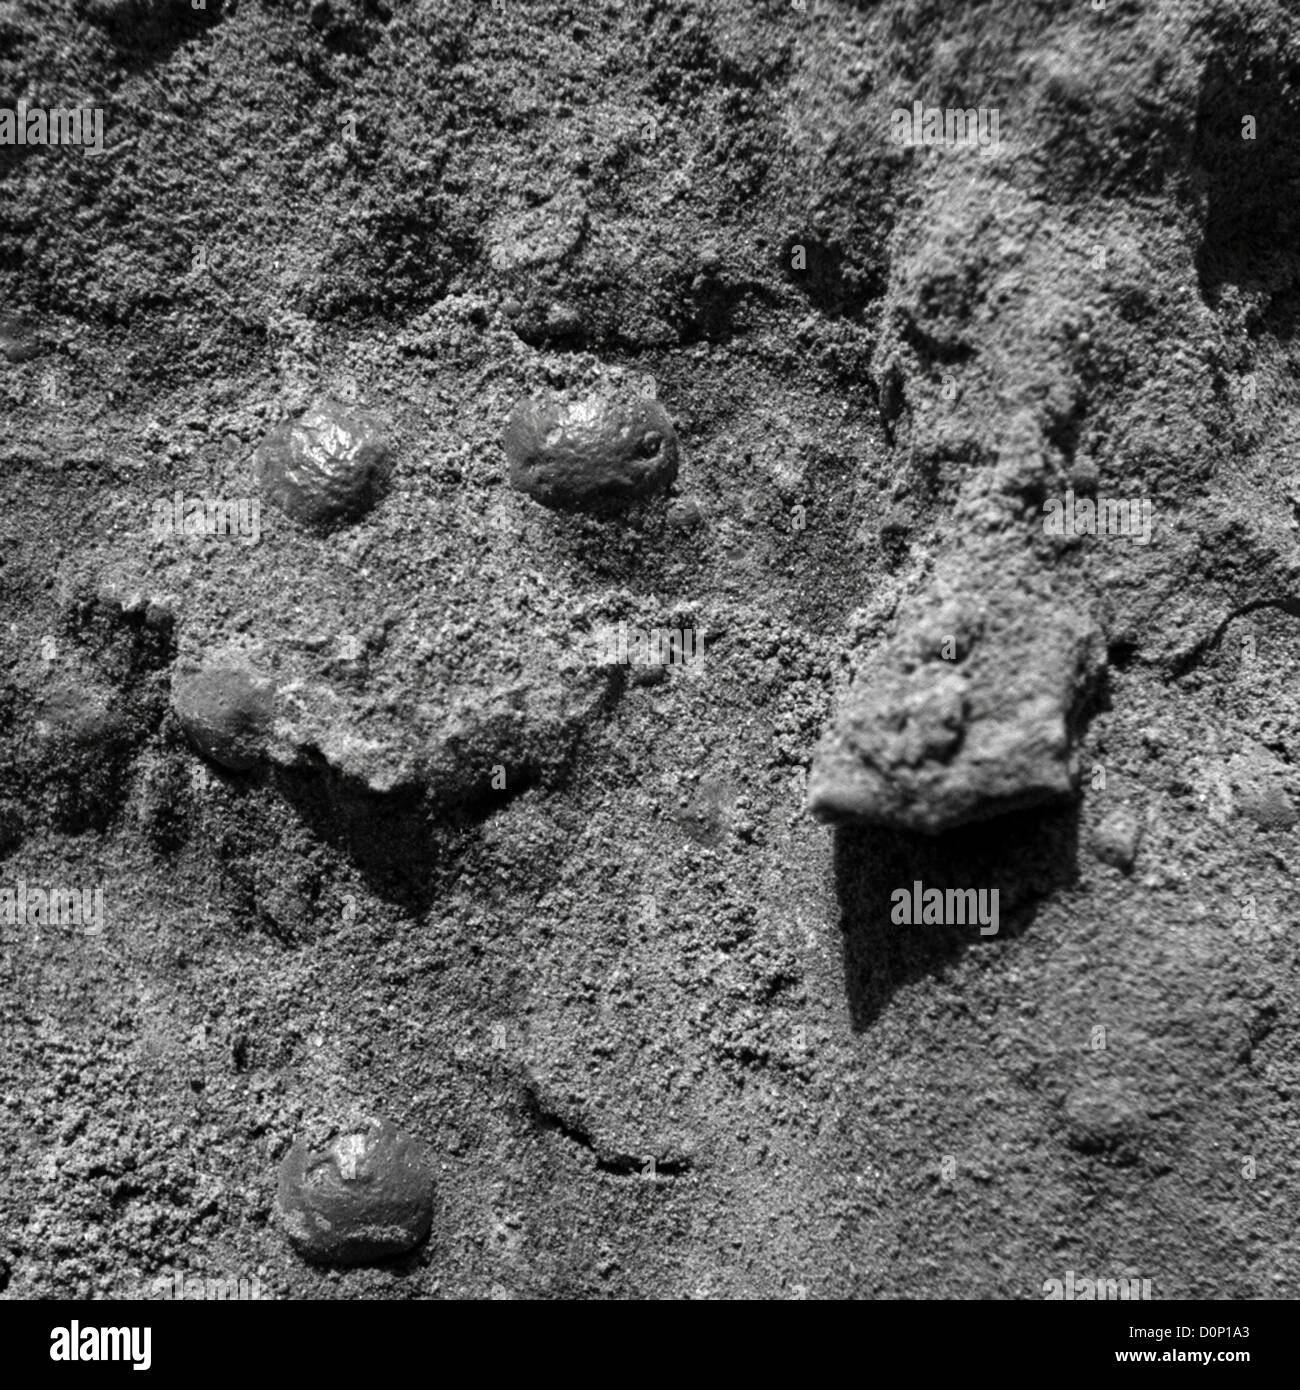 Spherical Objects Embedded in Martian Rock - Stock Image